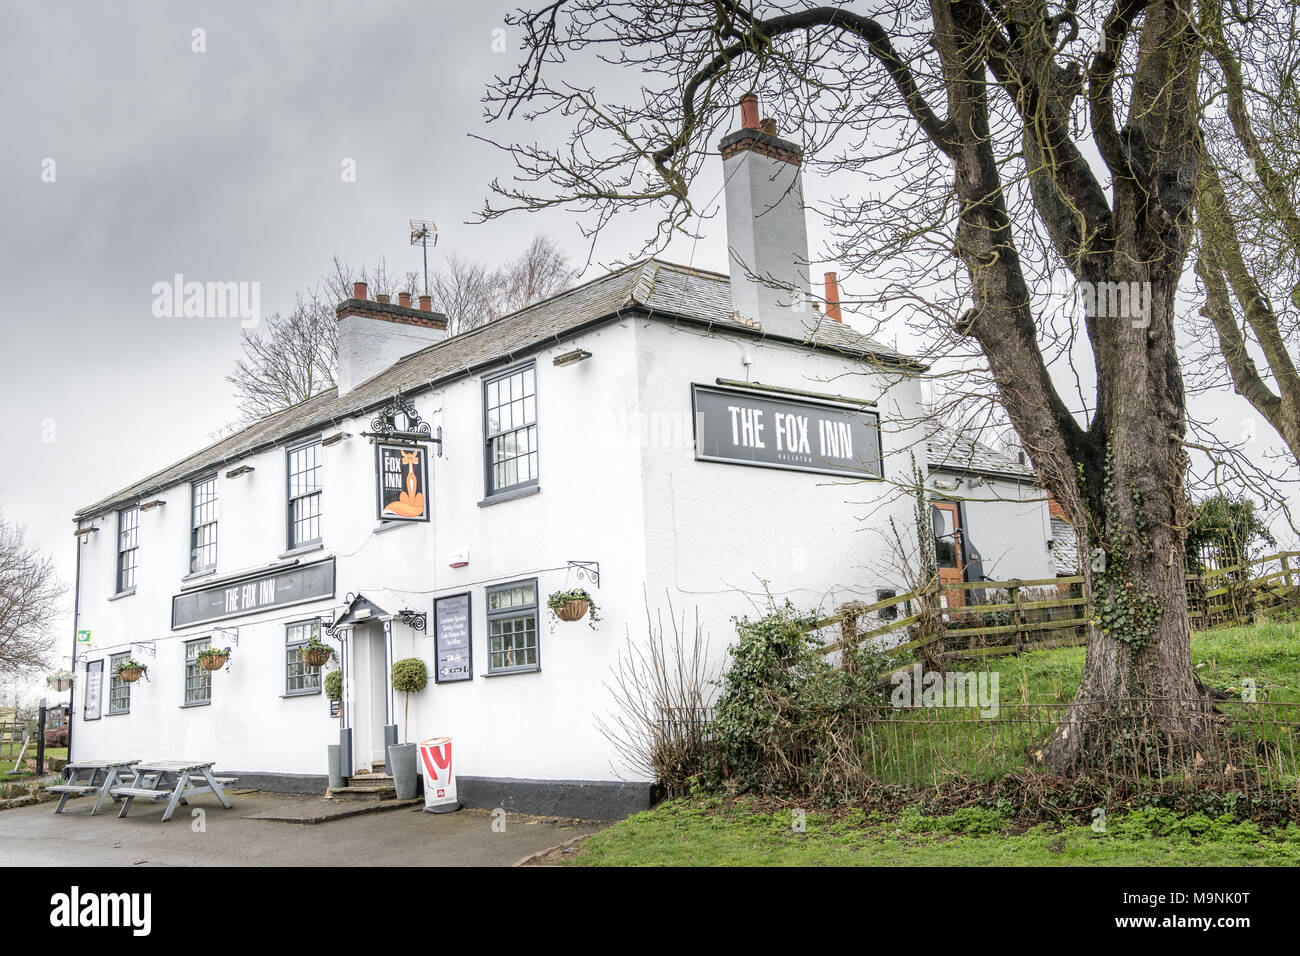 The Fox inn, starting point for an annual pie scramble ritual and then the bottle (small kegs of beer) kicking contest against the neighboring village Stock Photo